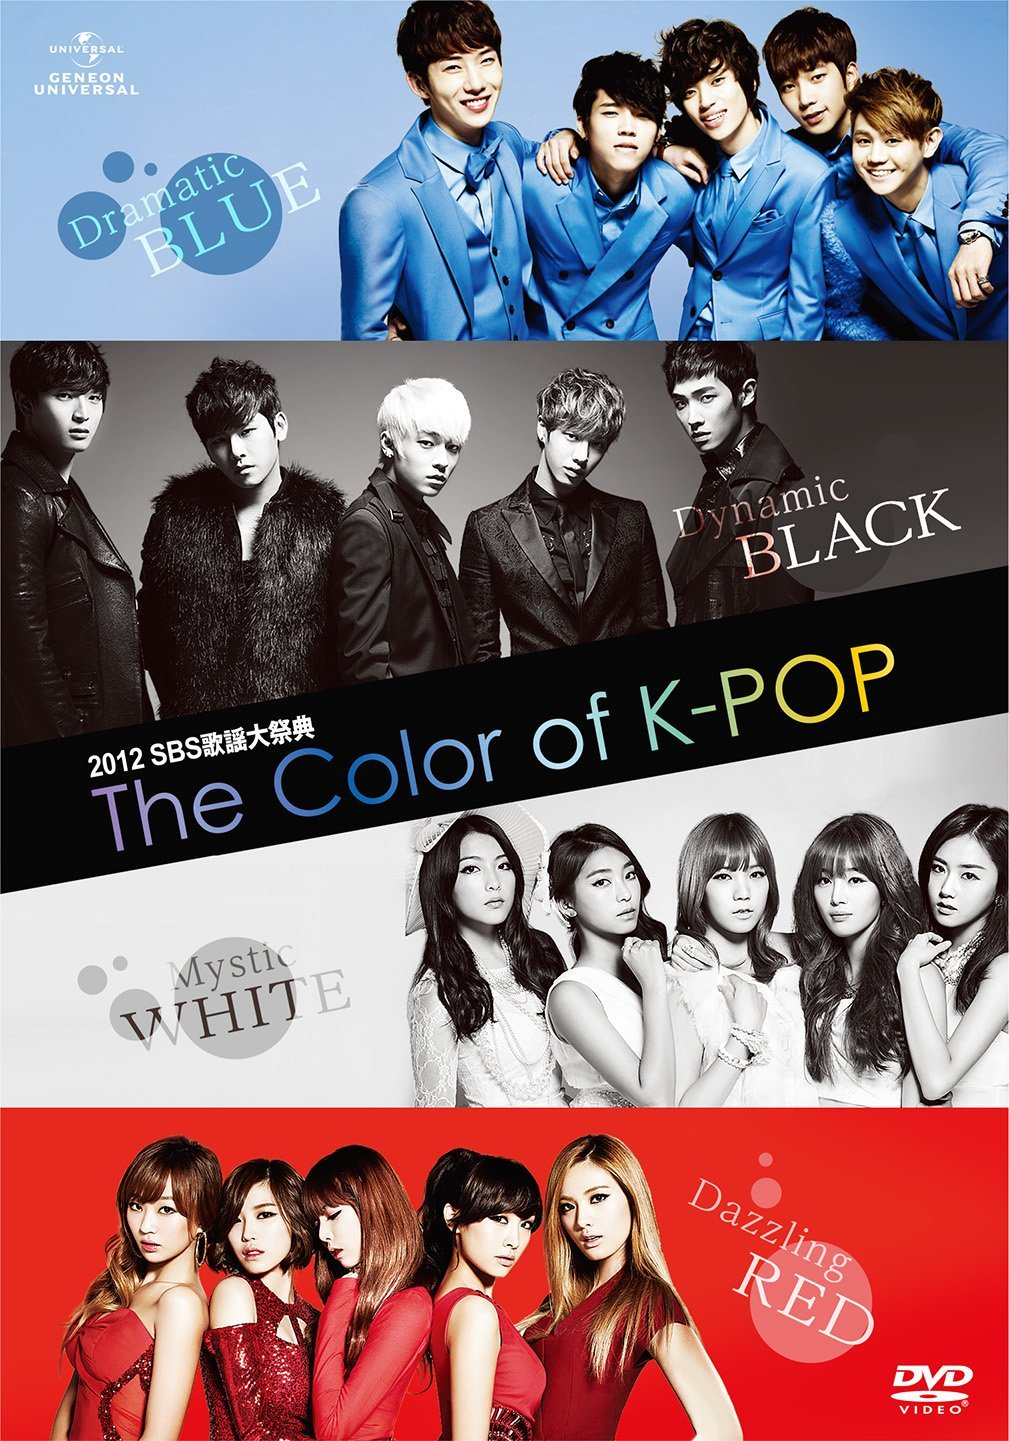 [DVD] 2012 SBS歌謡大祭典 The Color of K-POP